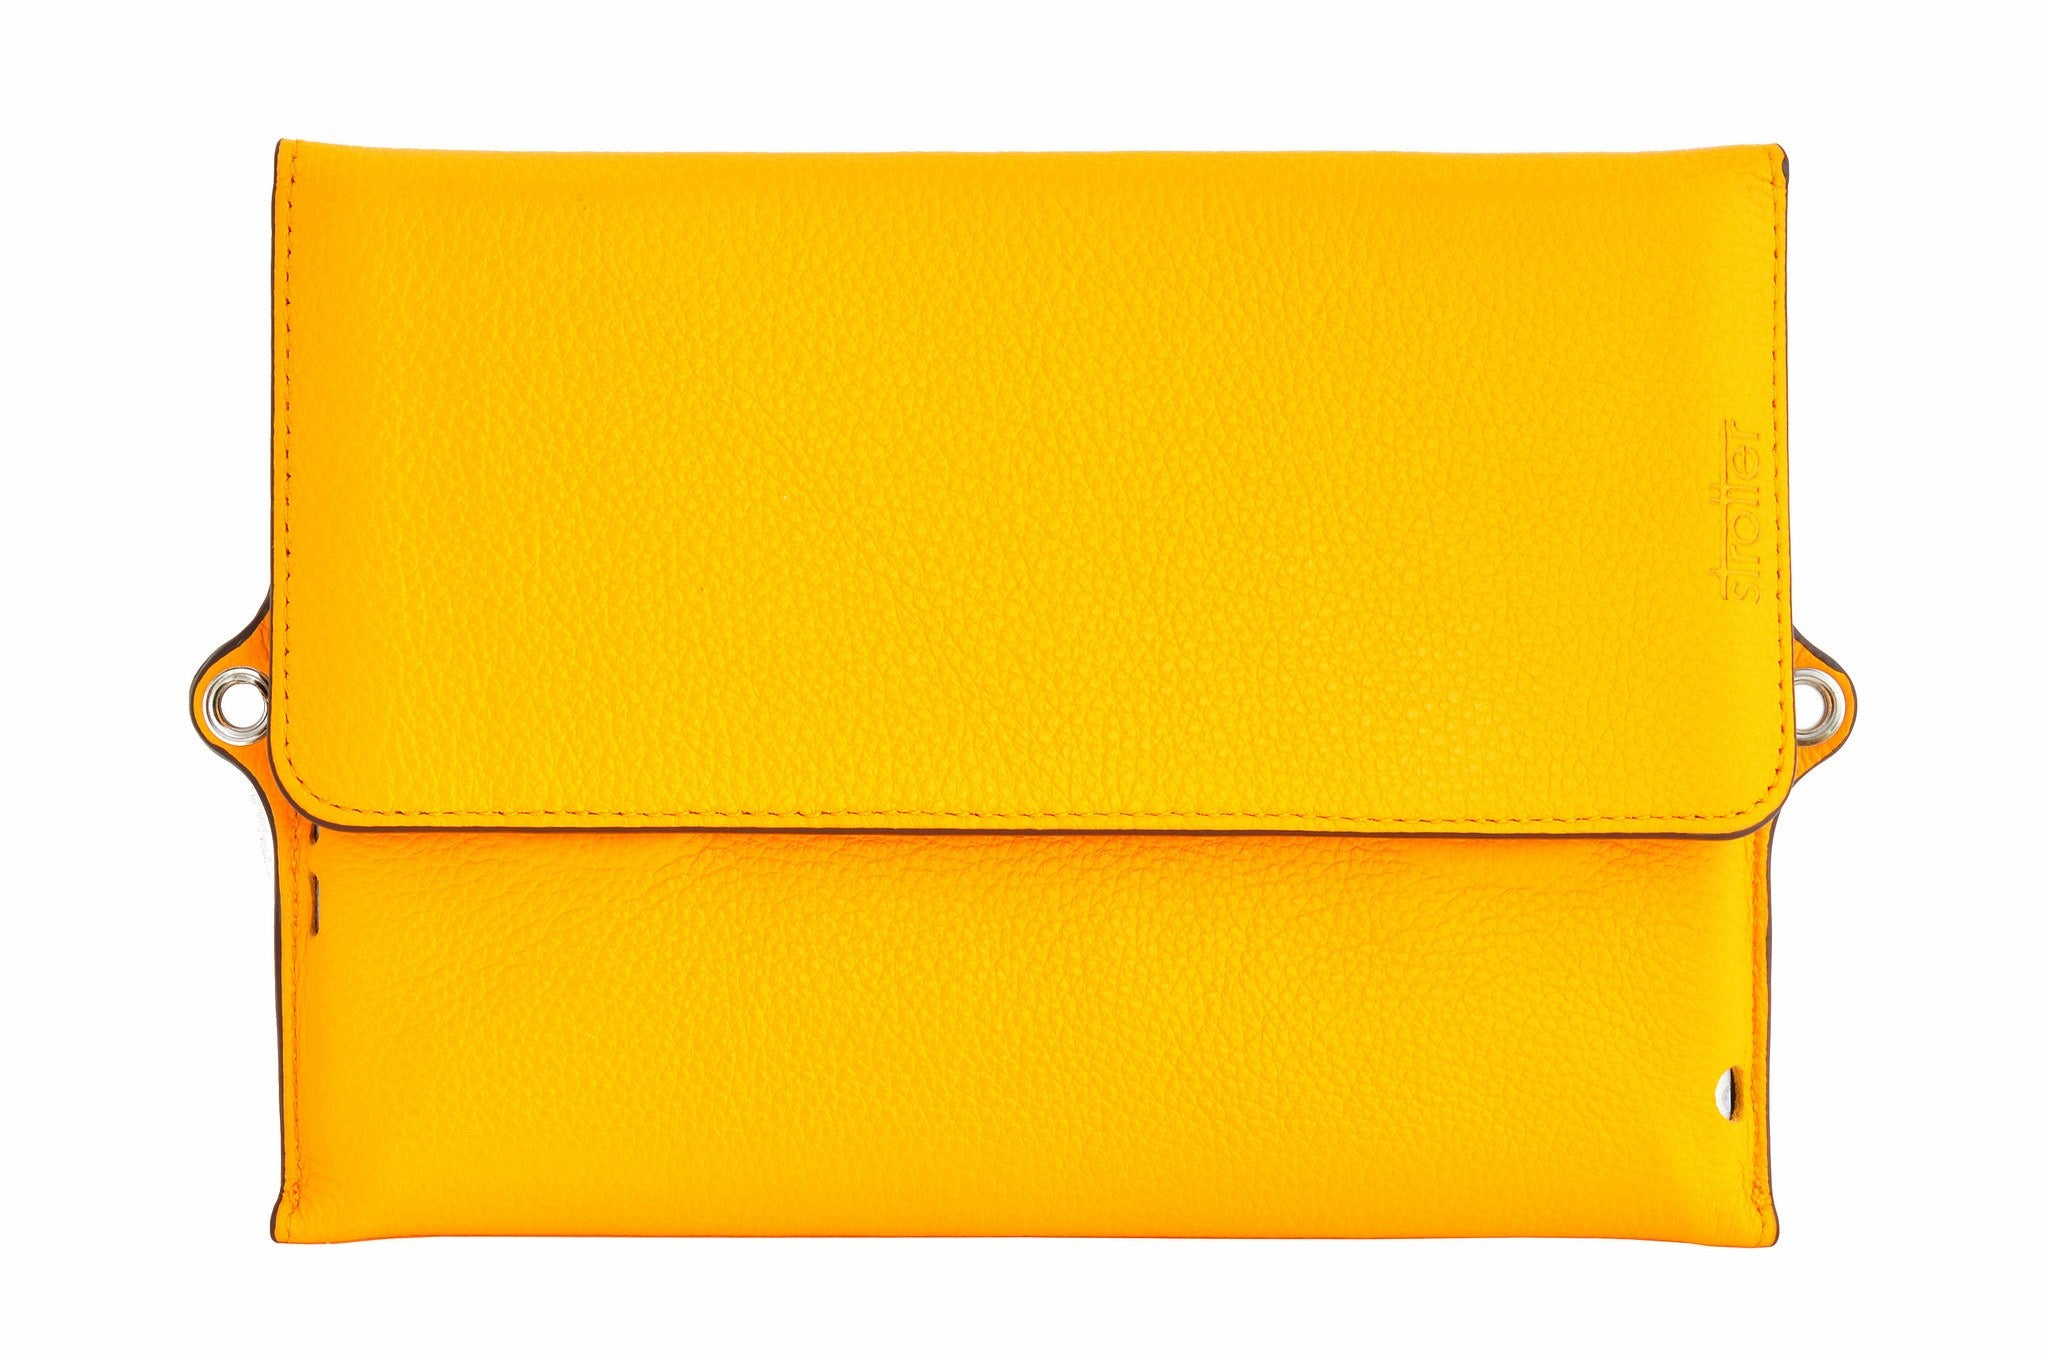 Case for iPad Mini - Across GL (genuine leather) in Sunny Yellow.